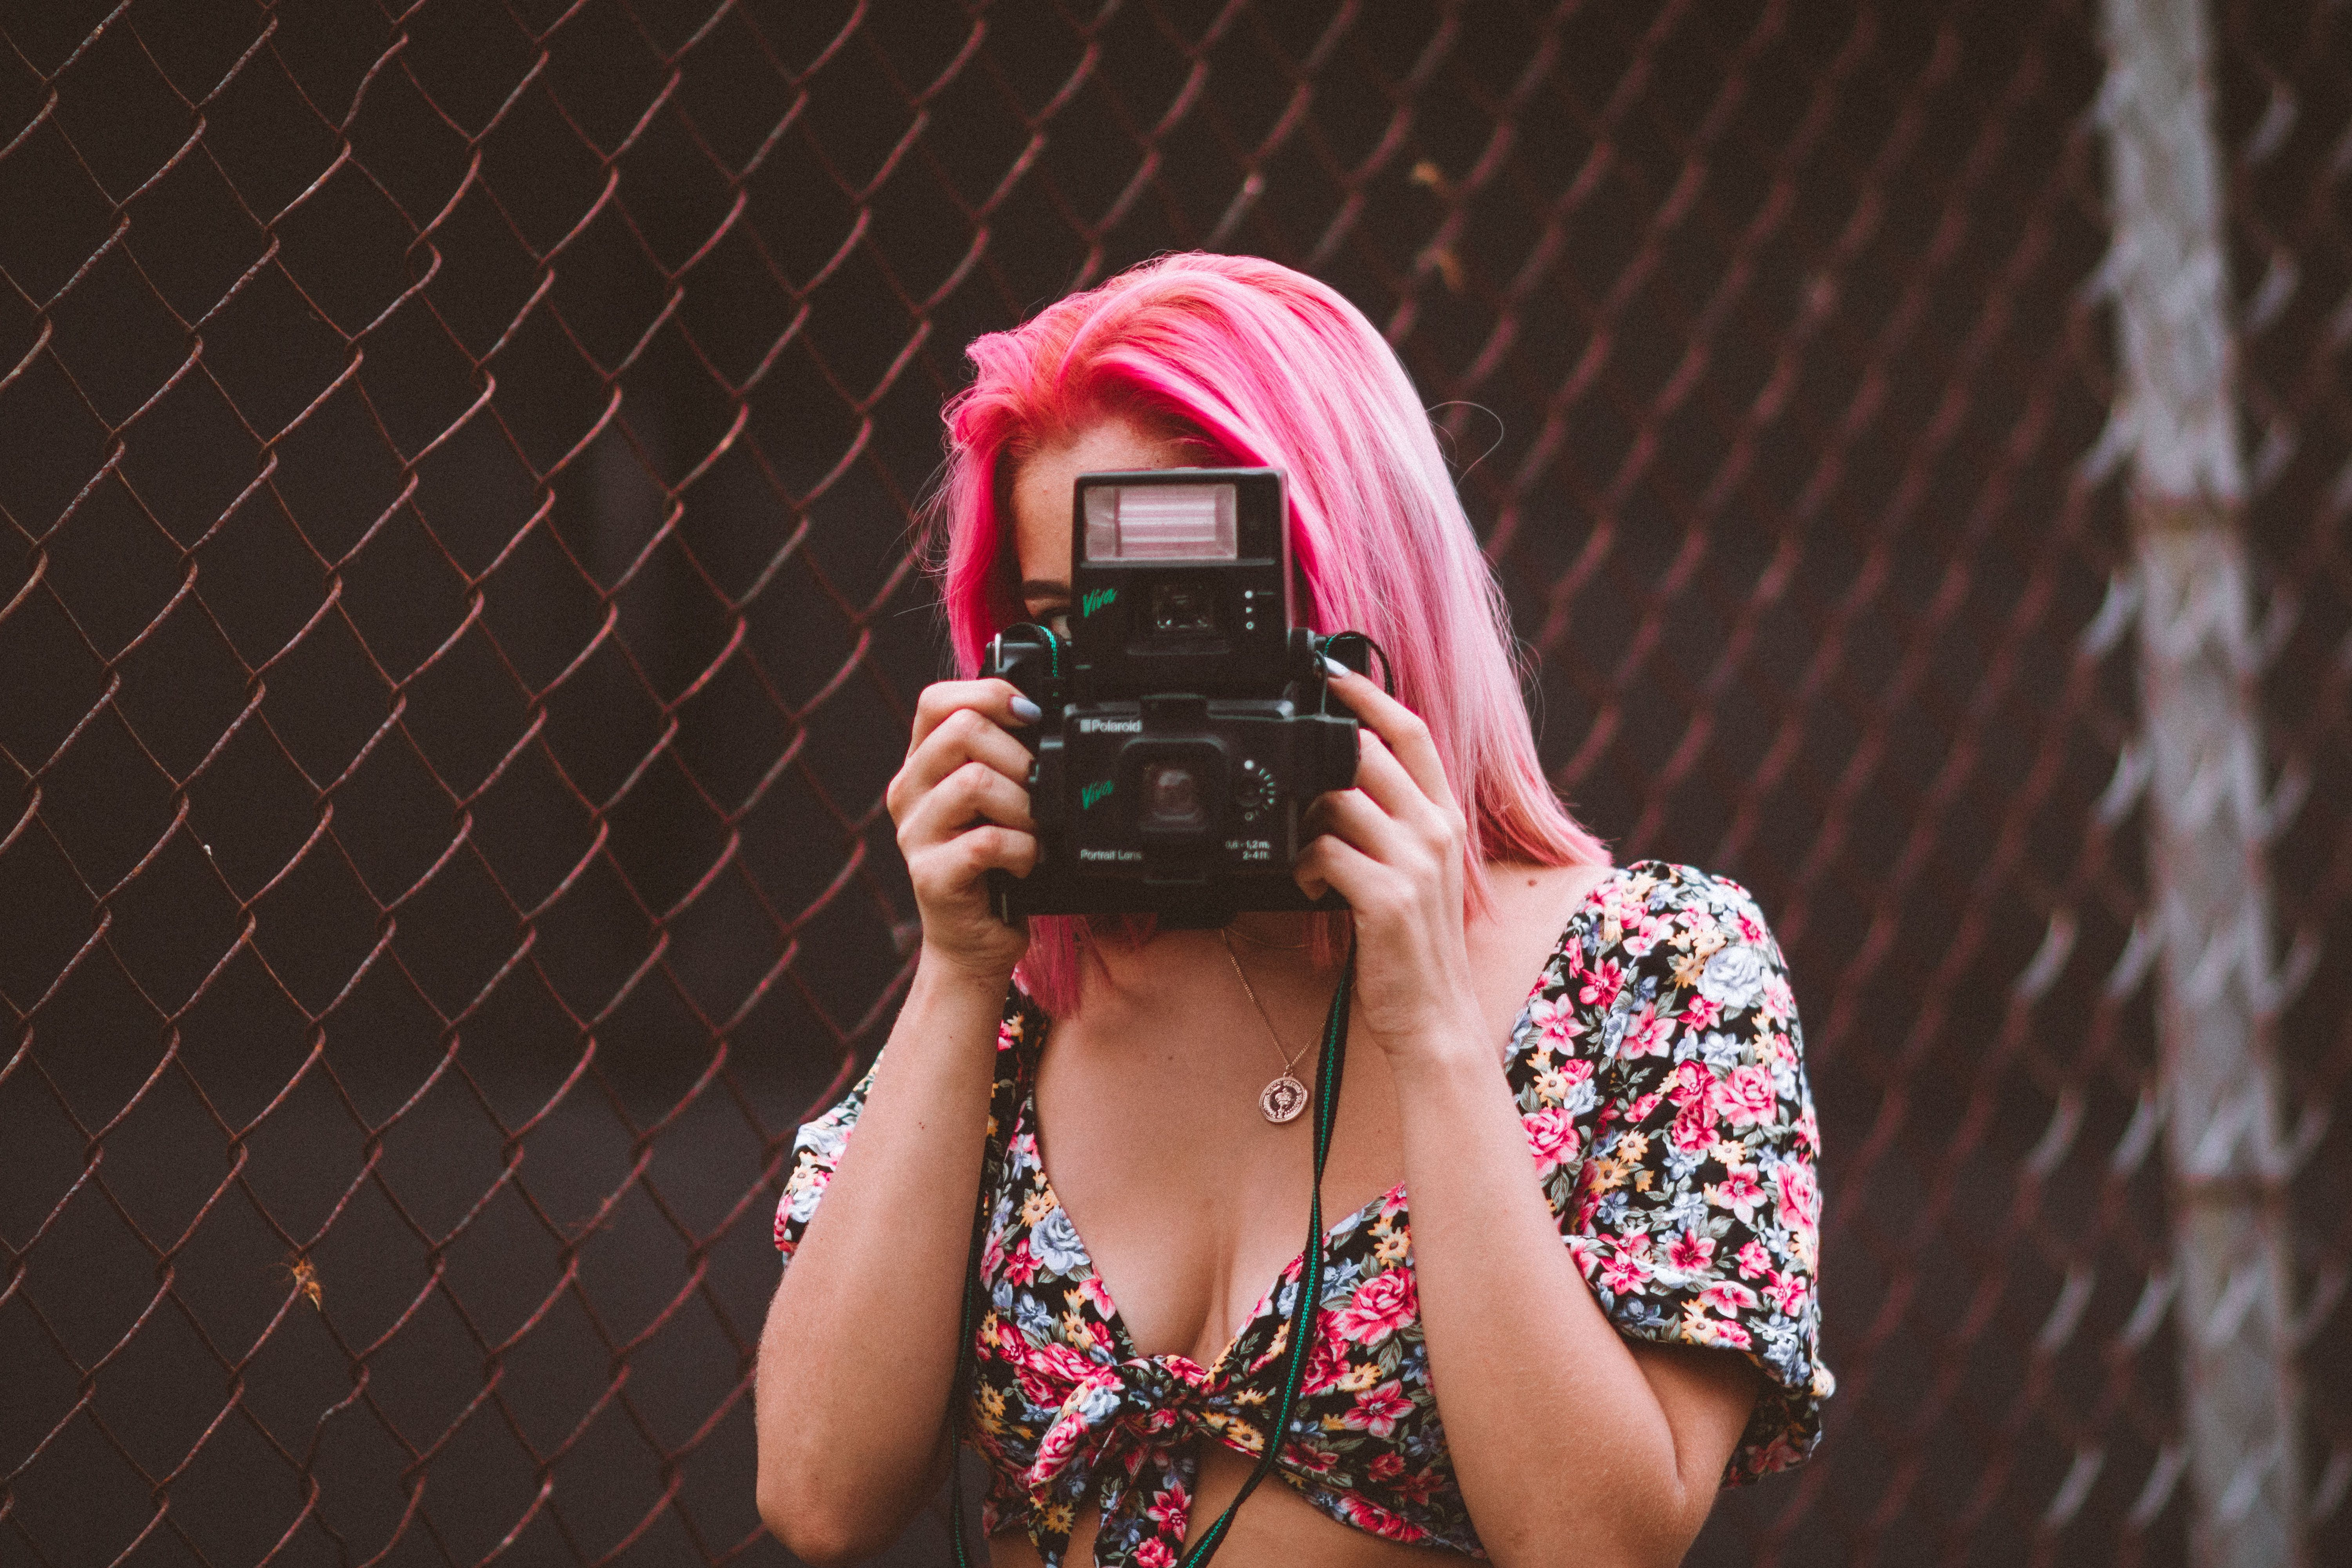 Woman Wearing Pink And Black Floral Top Taking Photo